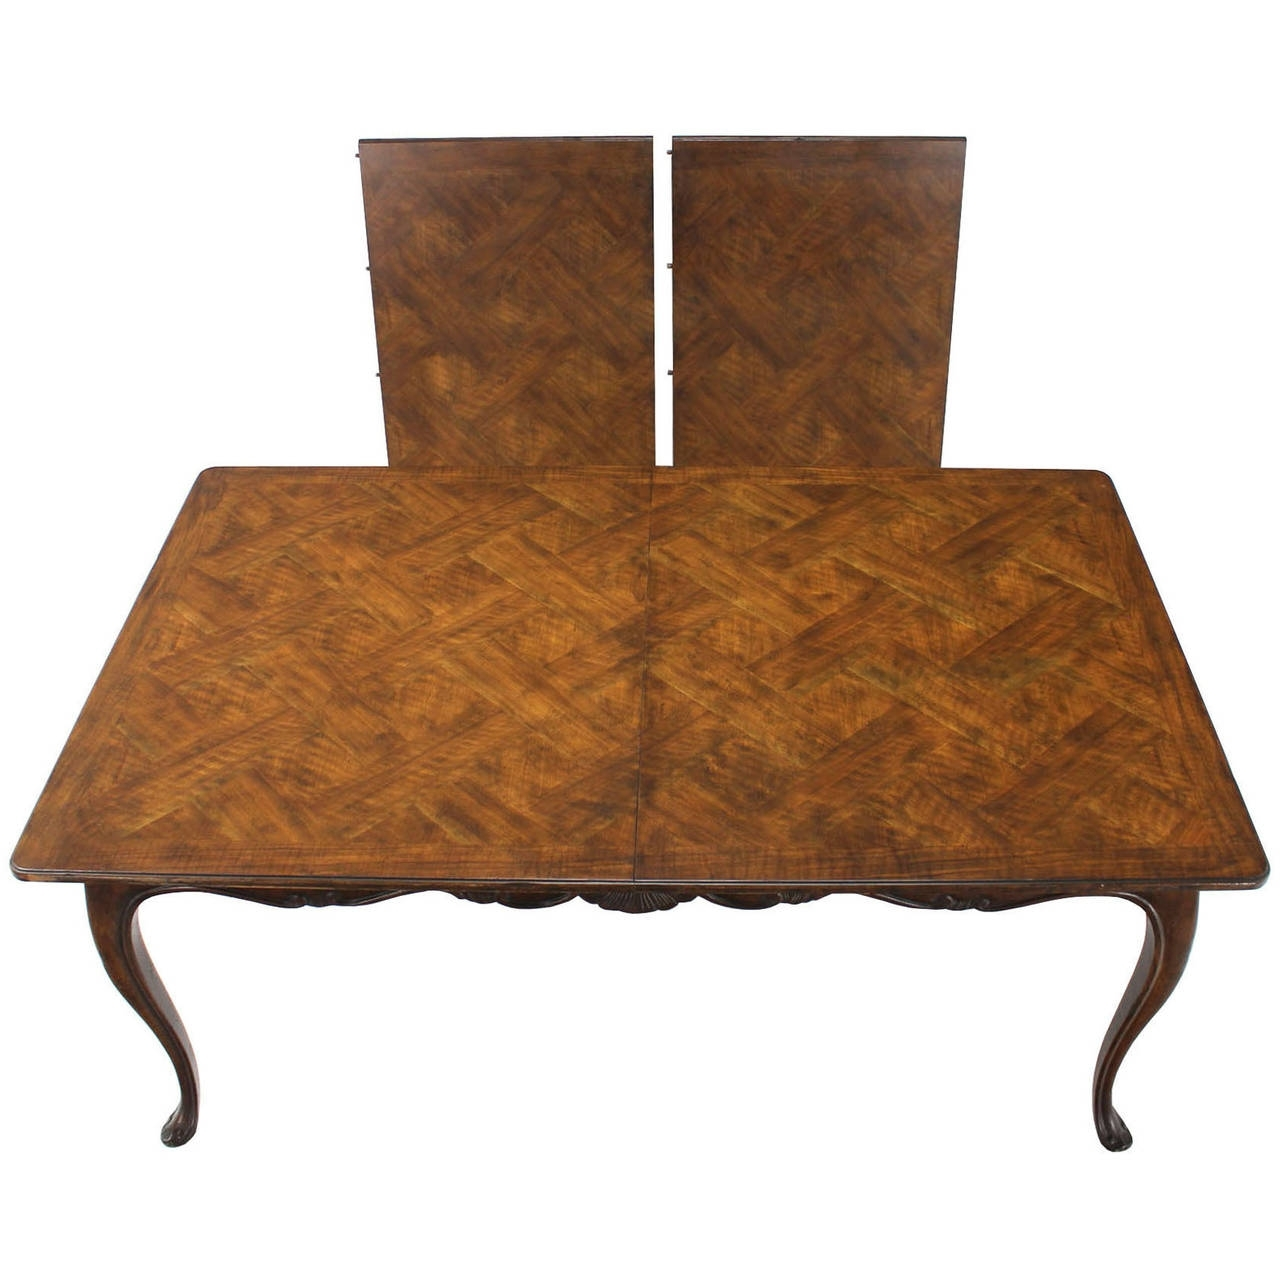 Preferred Burwood Walnut Dining Tableheritage W/ One Extension Leaf With Regard To Parquet Dining Tables (View 10 of 25)